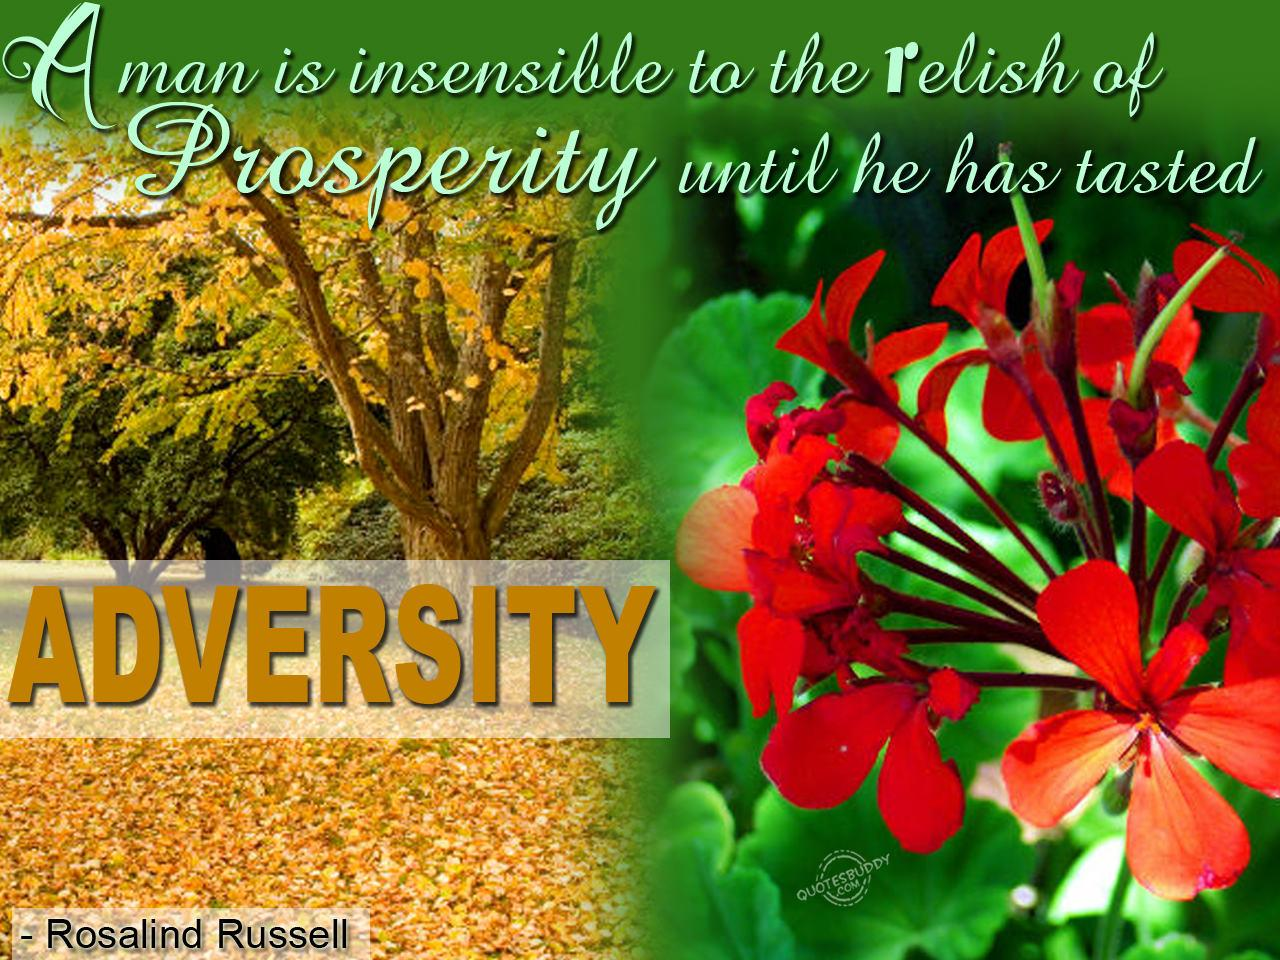 A man is insensible to the relish of prosperity until he has tasted adversity. Rosalind Russell